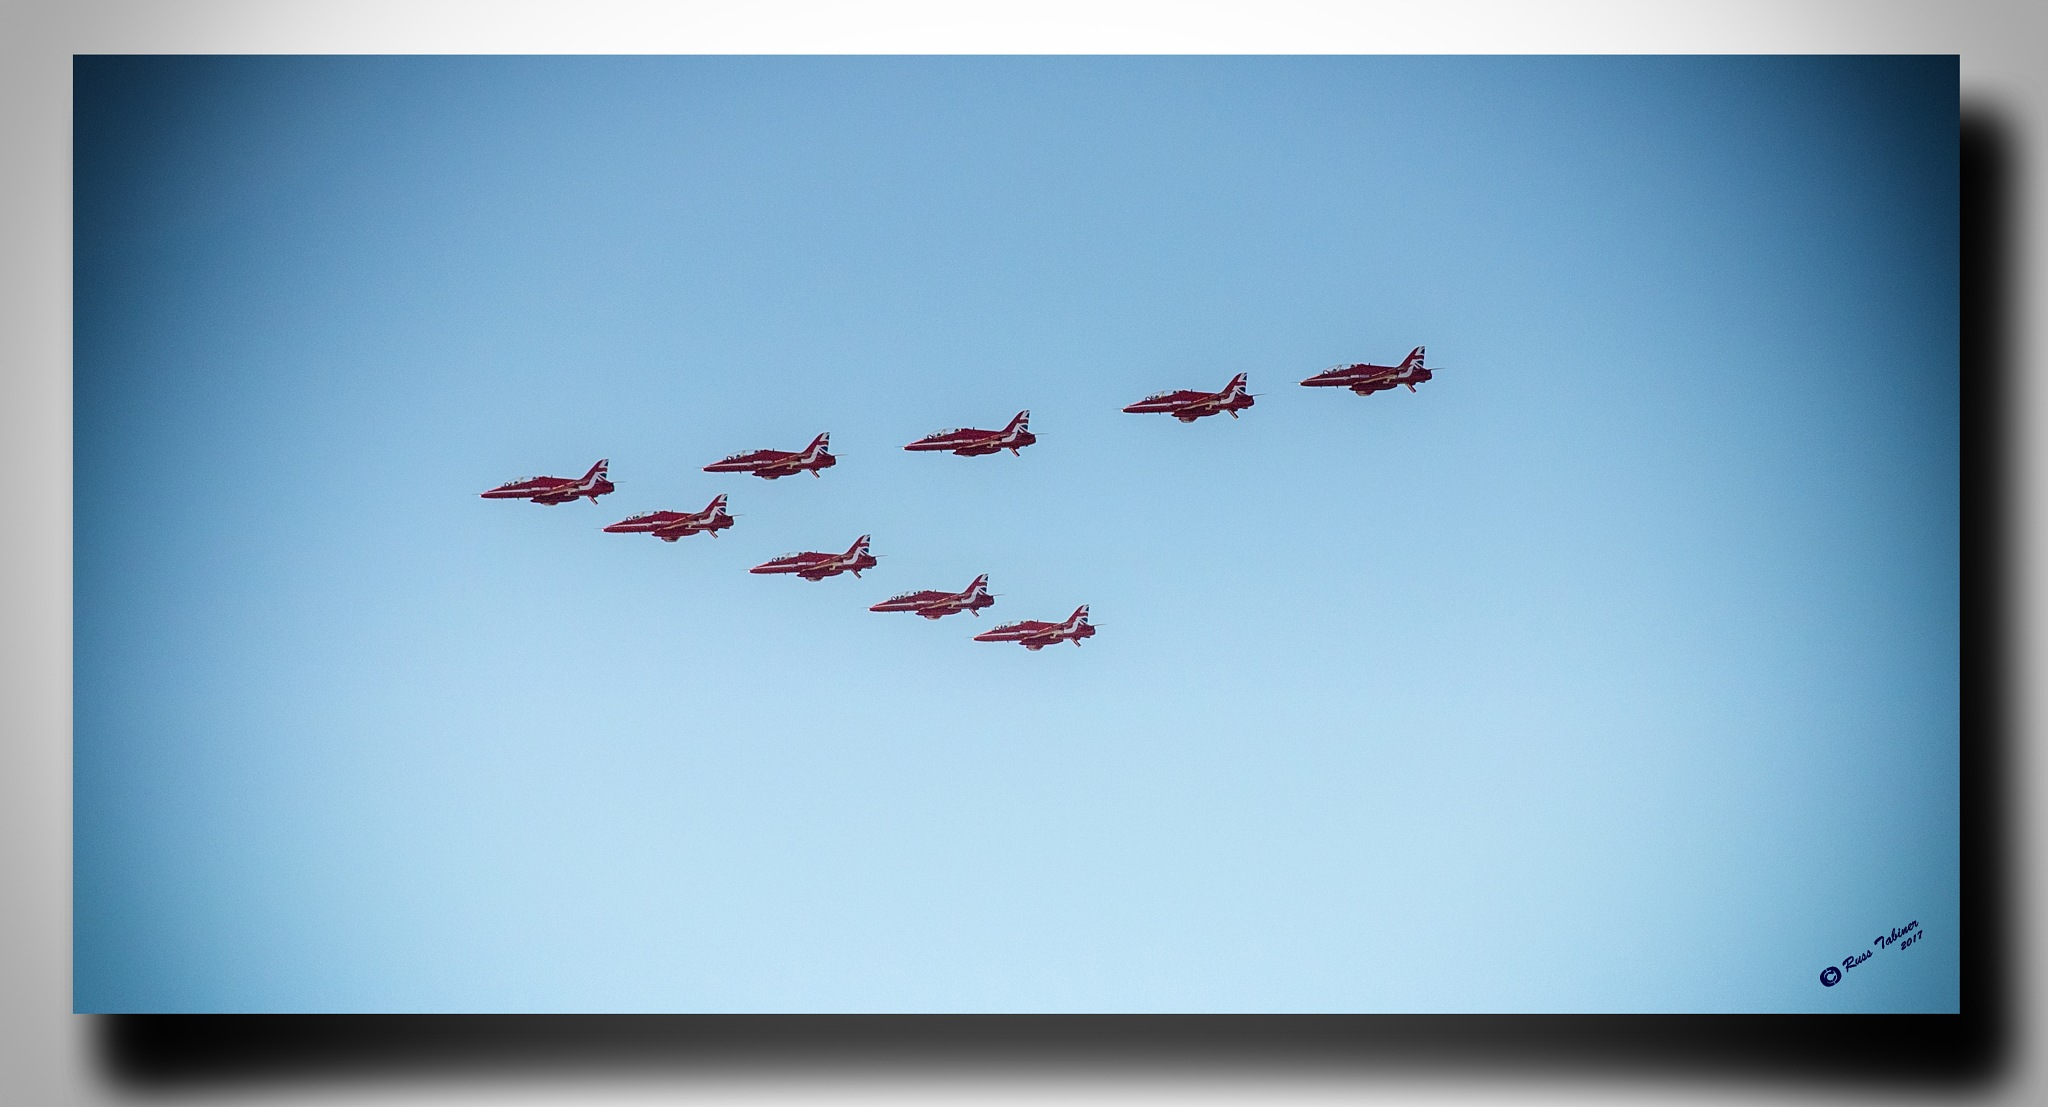 Red Arrows in formation by Russ Tabiner